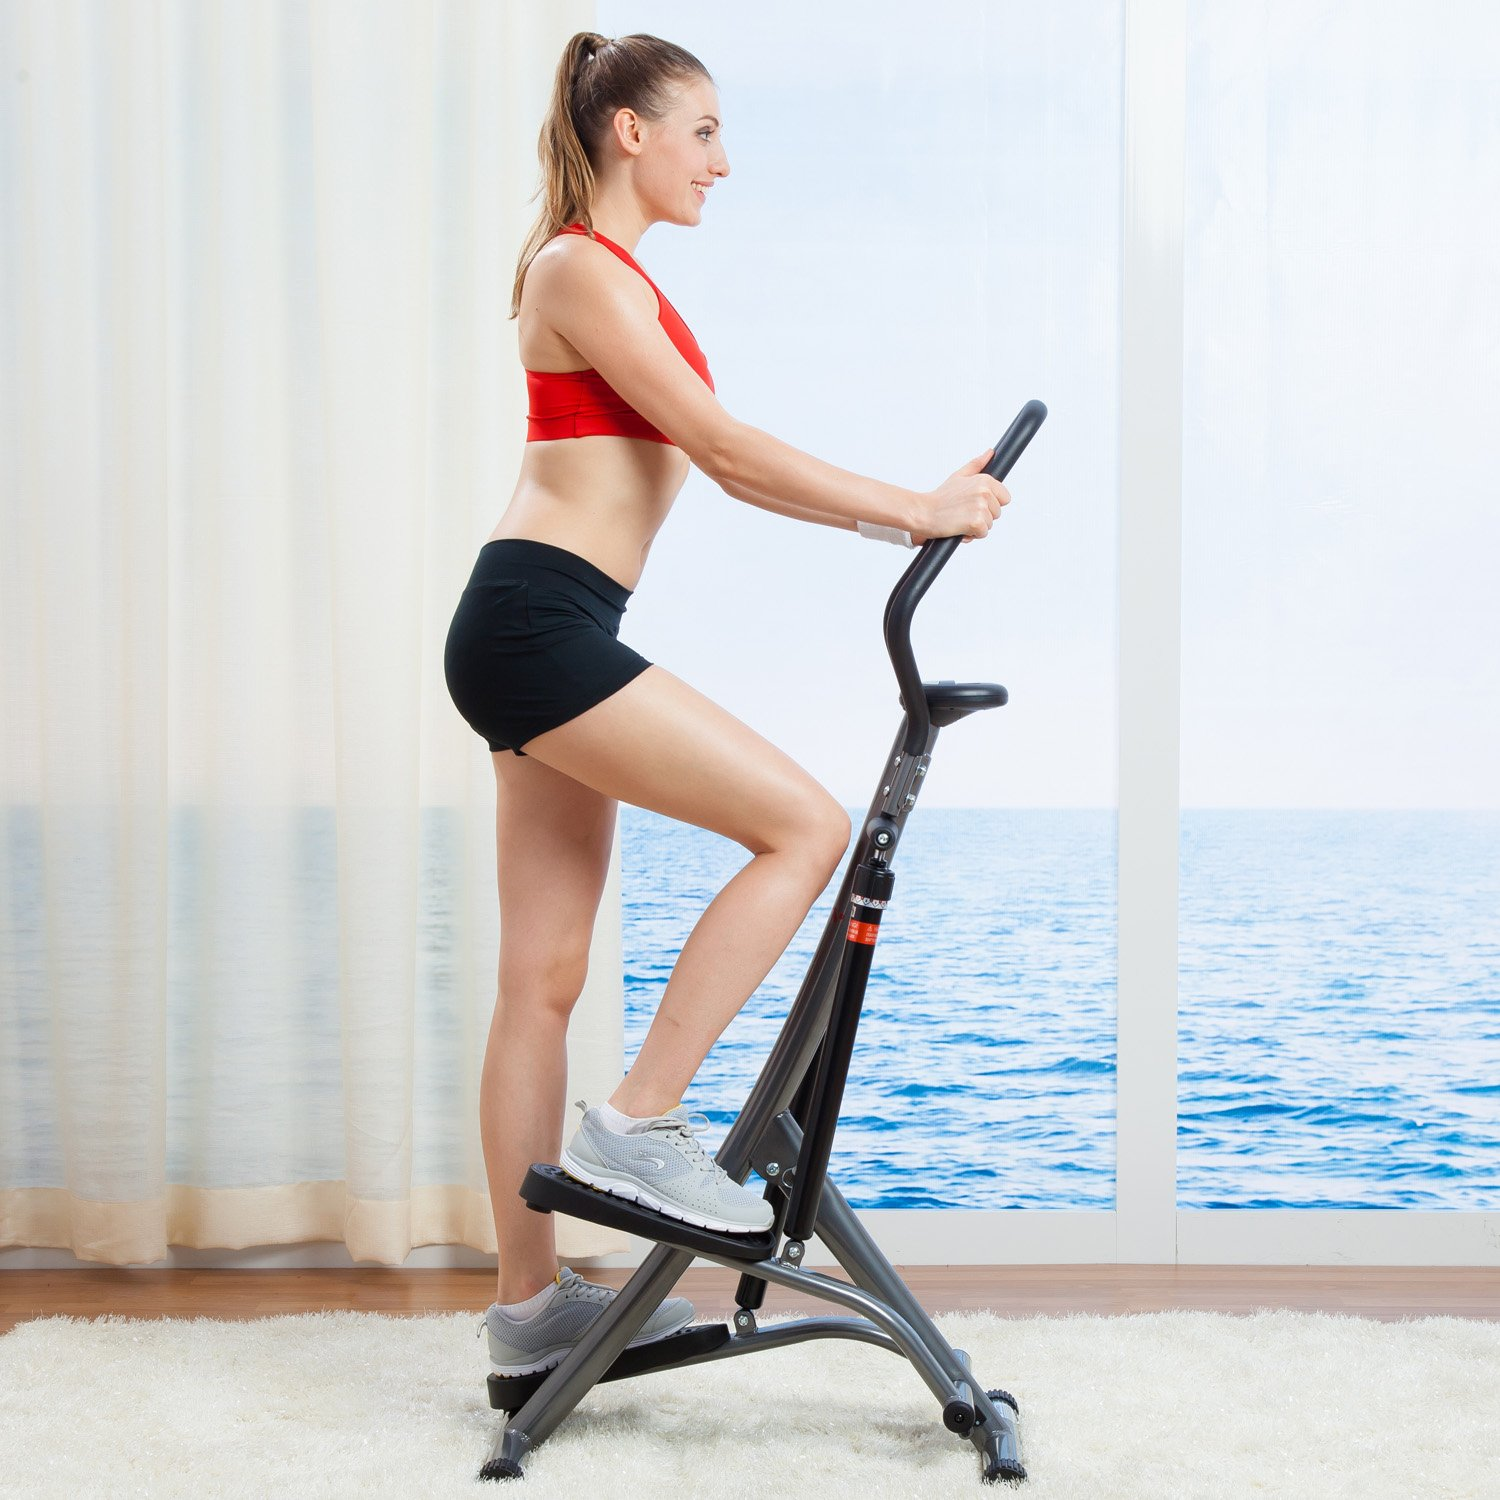 Sunny Health & Fitness Stair Stepper Exercise Equipment Step Machine for Exercise - SF-1115 by Sunny Health & Fitness (Image #2)